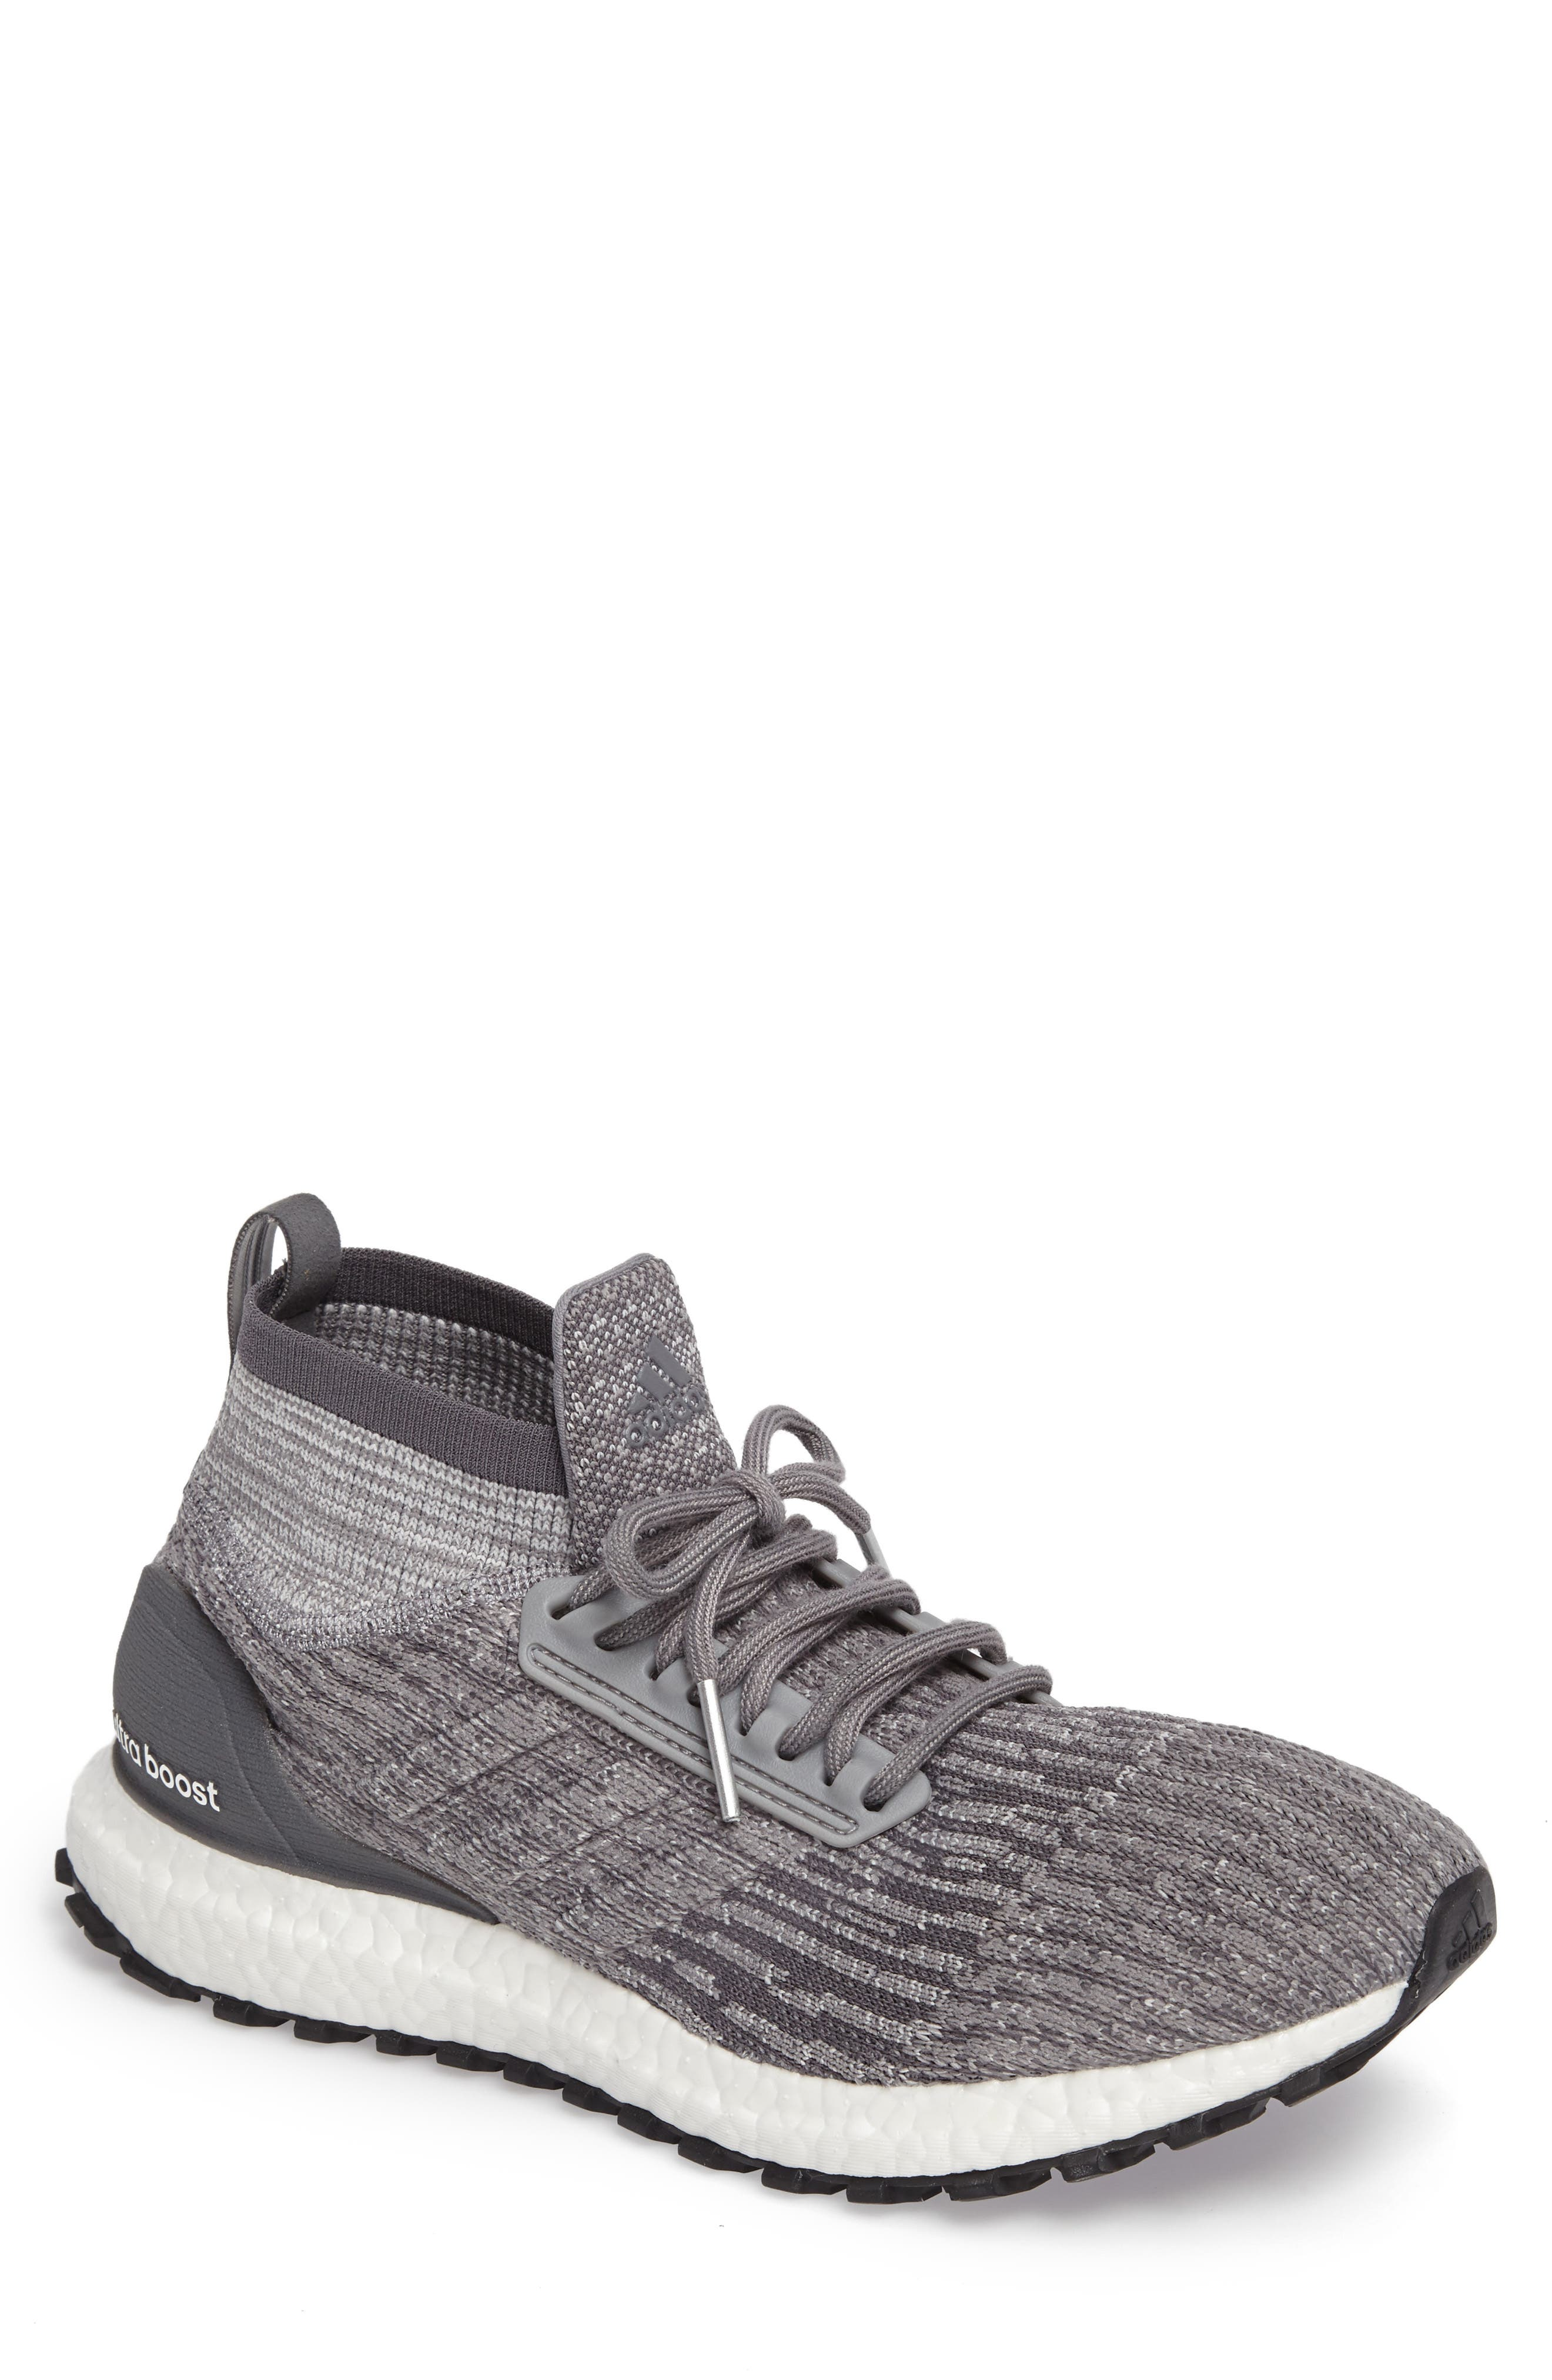 Main Image - adidas UltraBOOST All Terrain Water Resistant Running Shoe (Men)